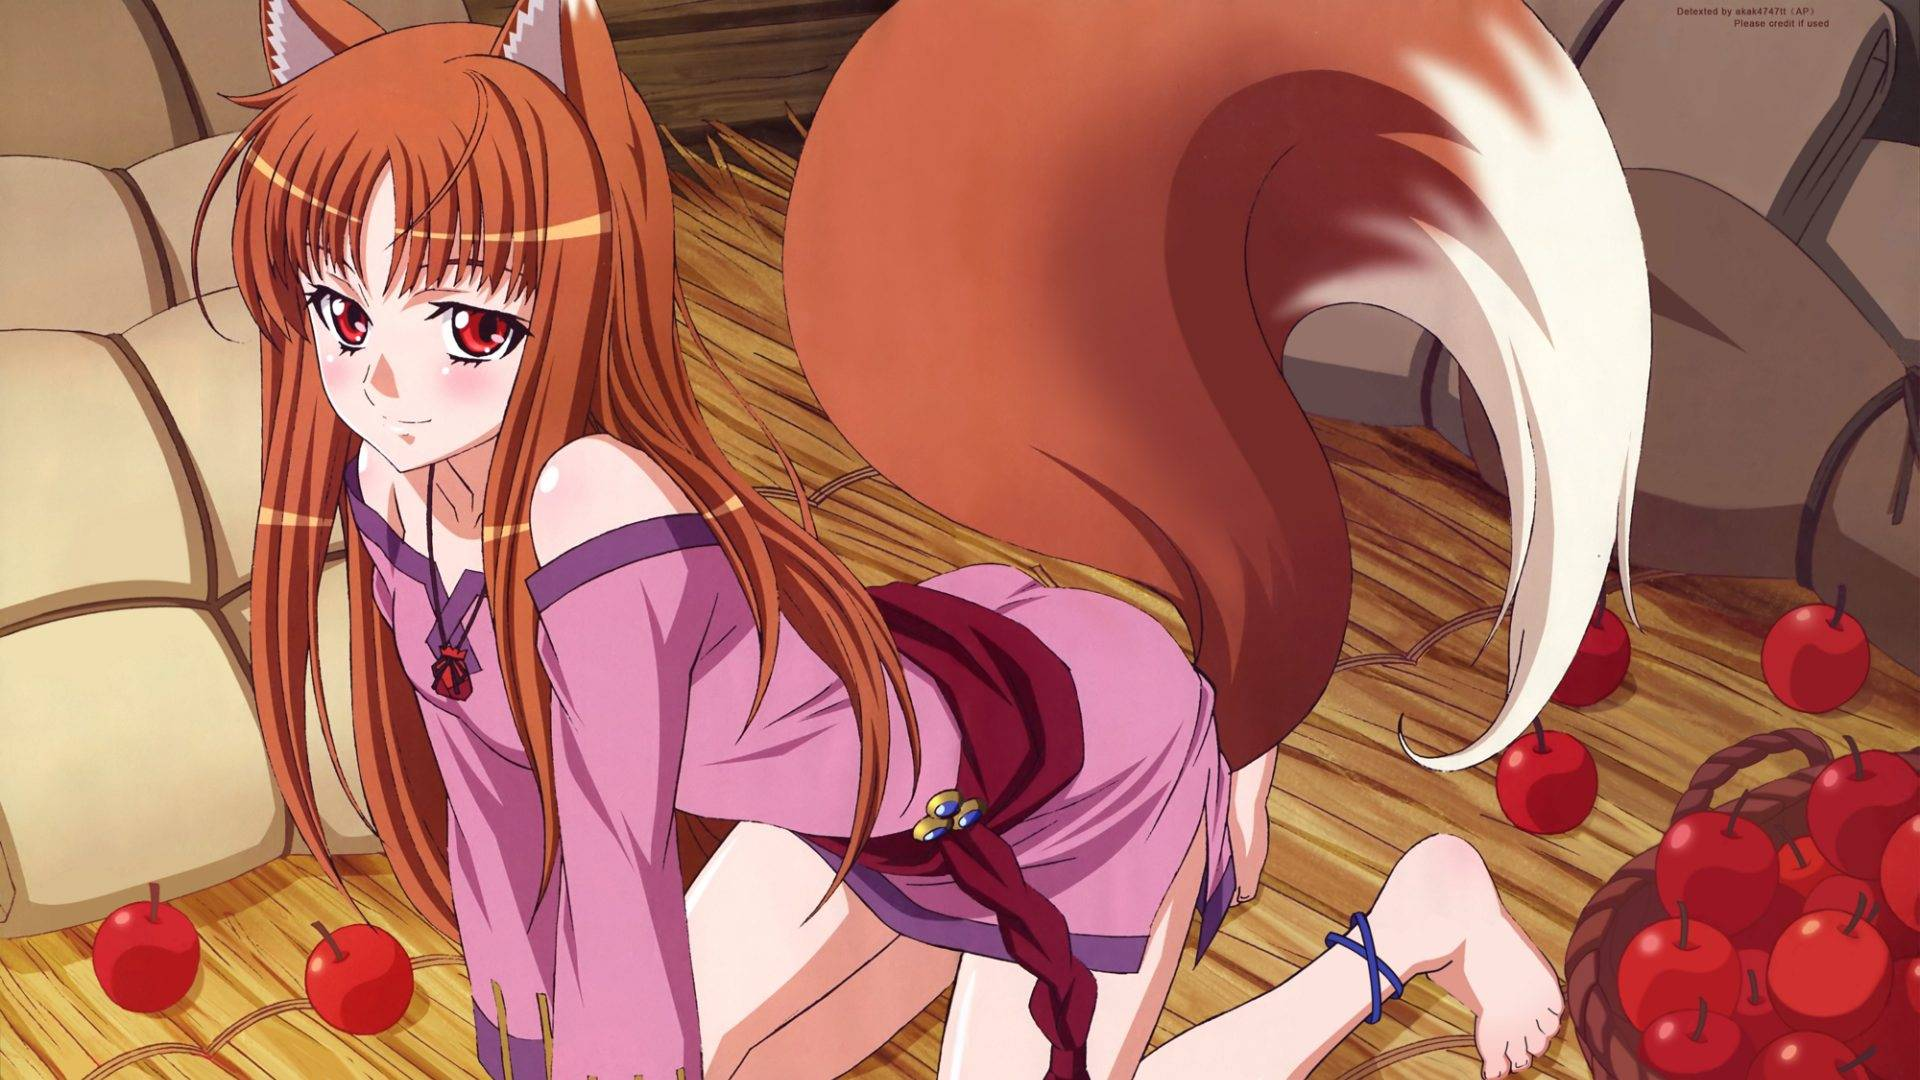 48 Holo Spice And Wolf Wallpaper On Wallpapersafari